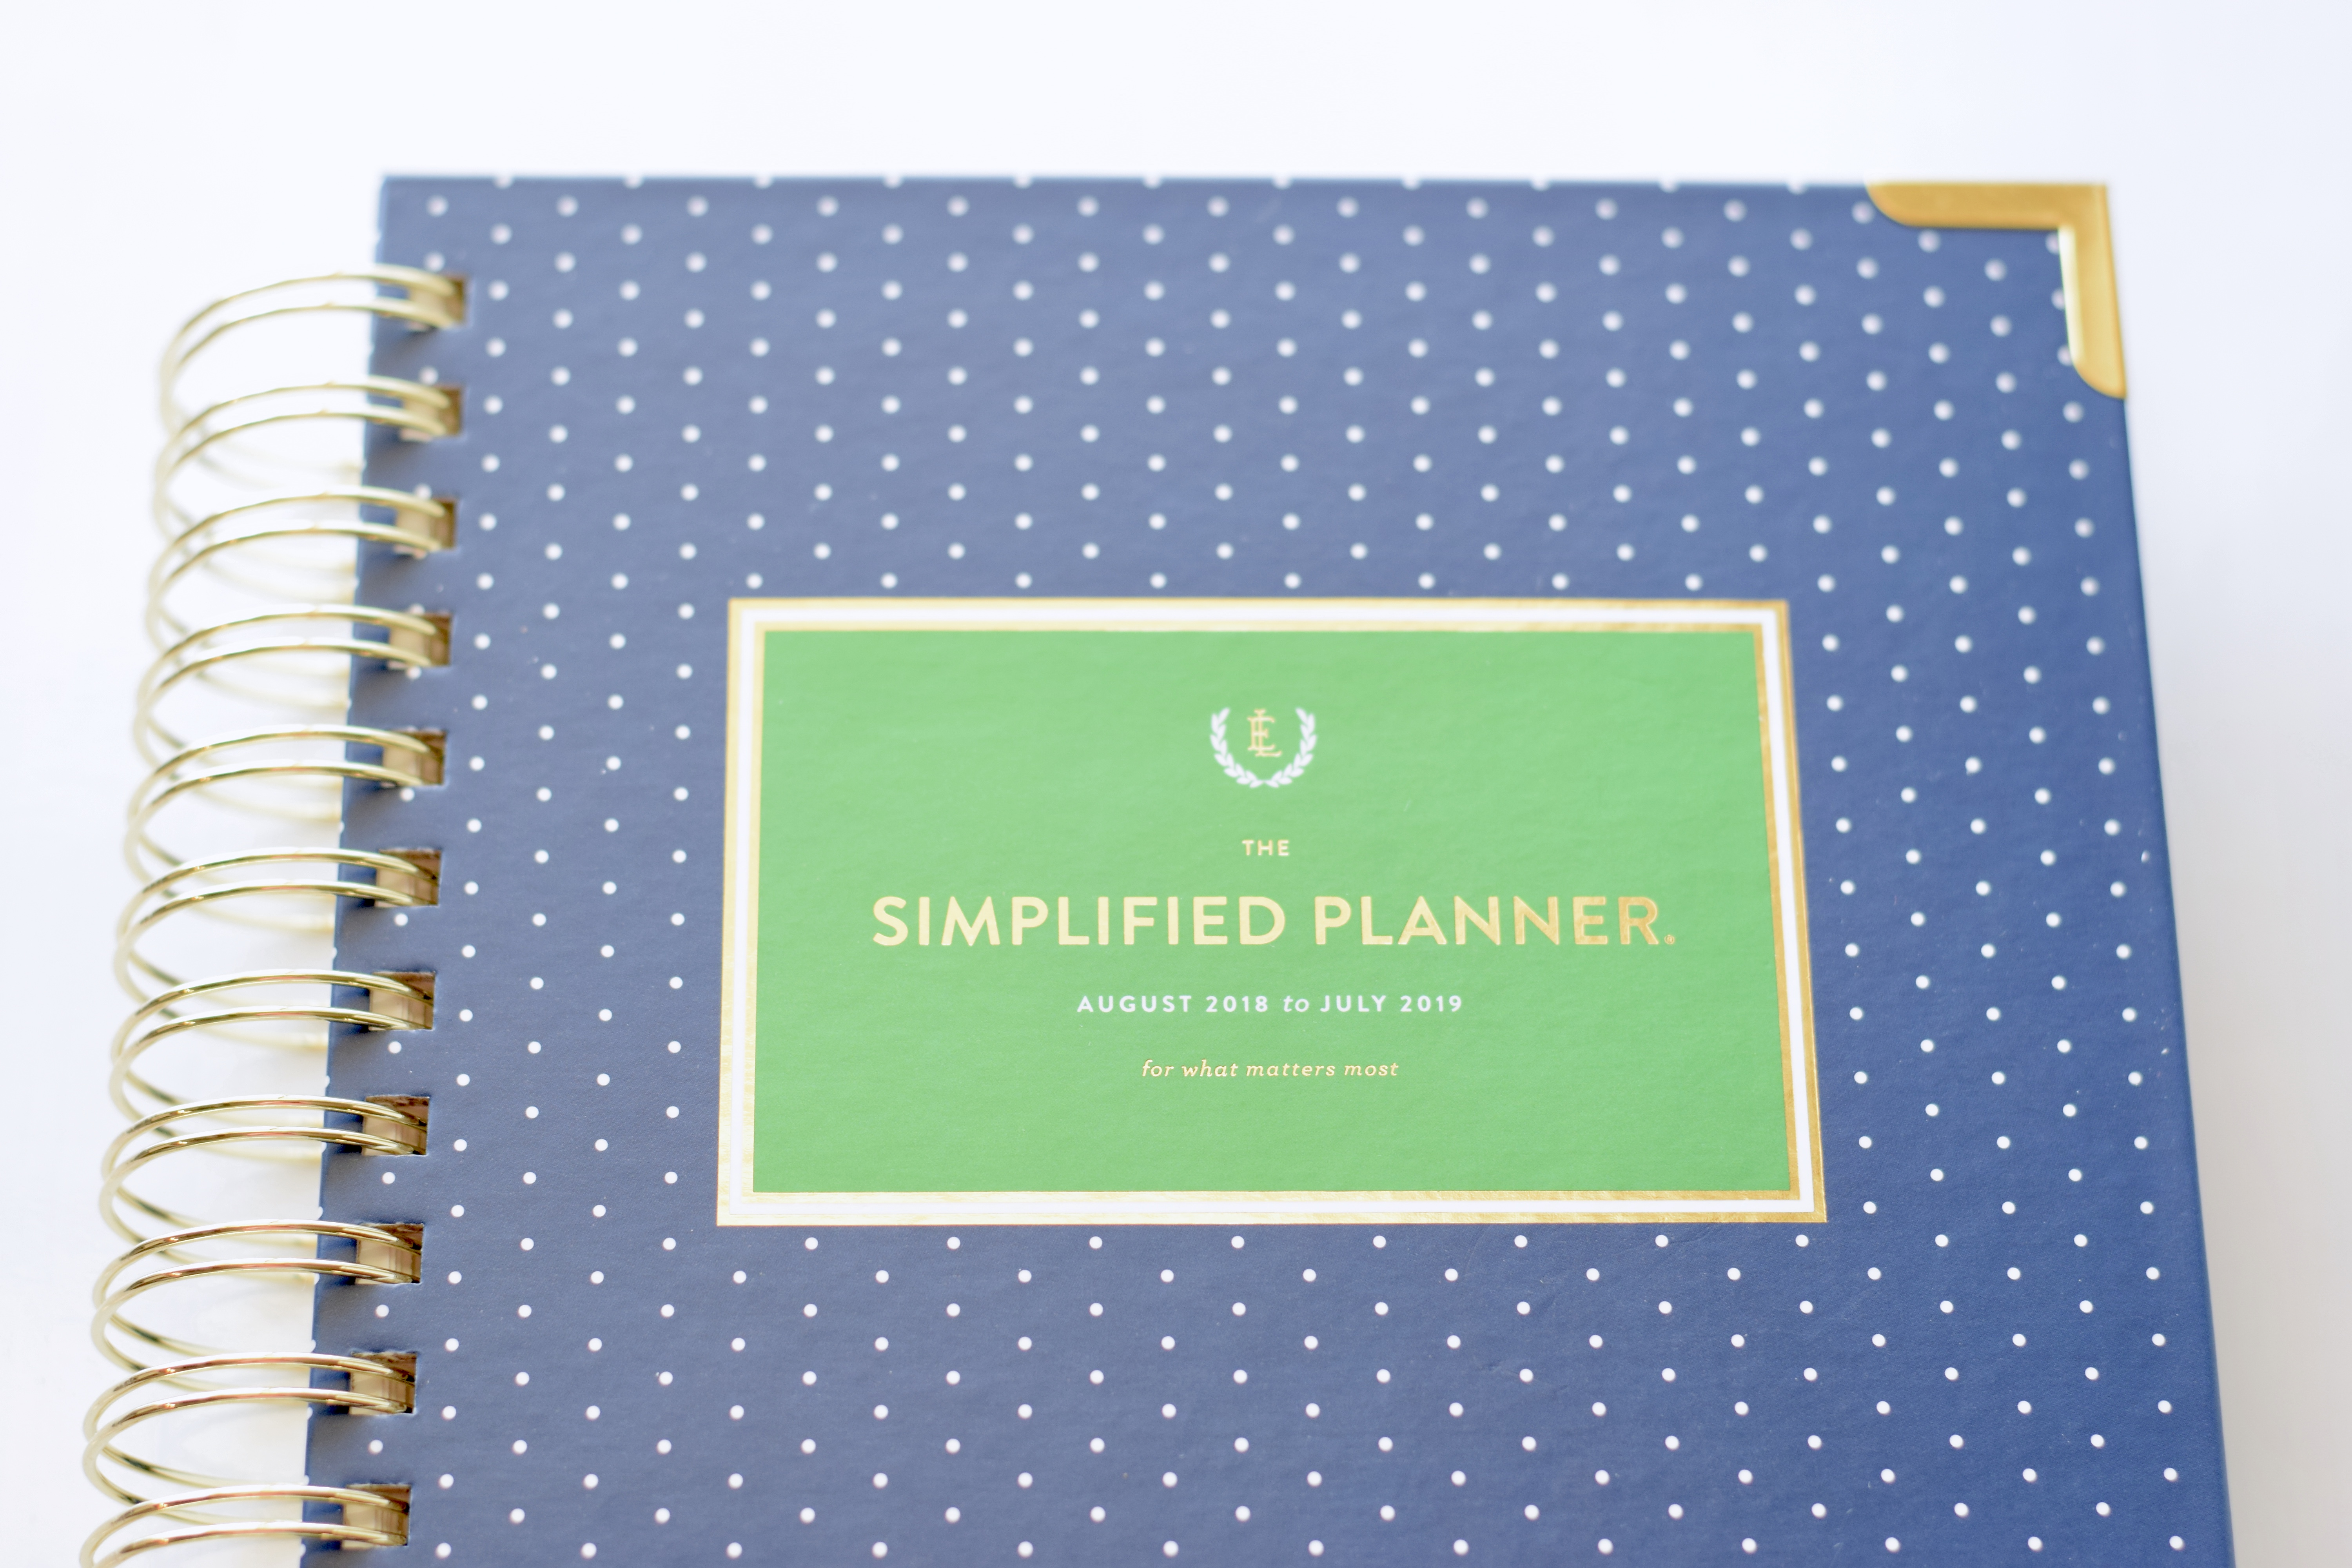 image relating to Simplified Planner Reviews titled Simplified Planner 2018-2019 Planner Evaluate How I Application